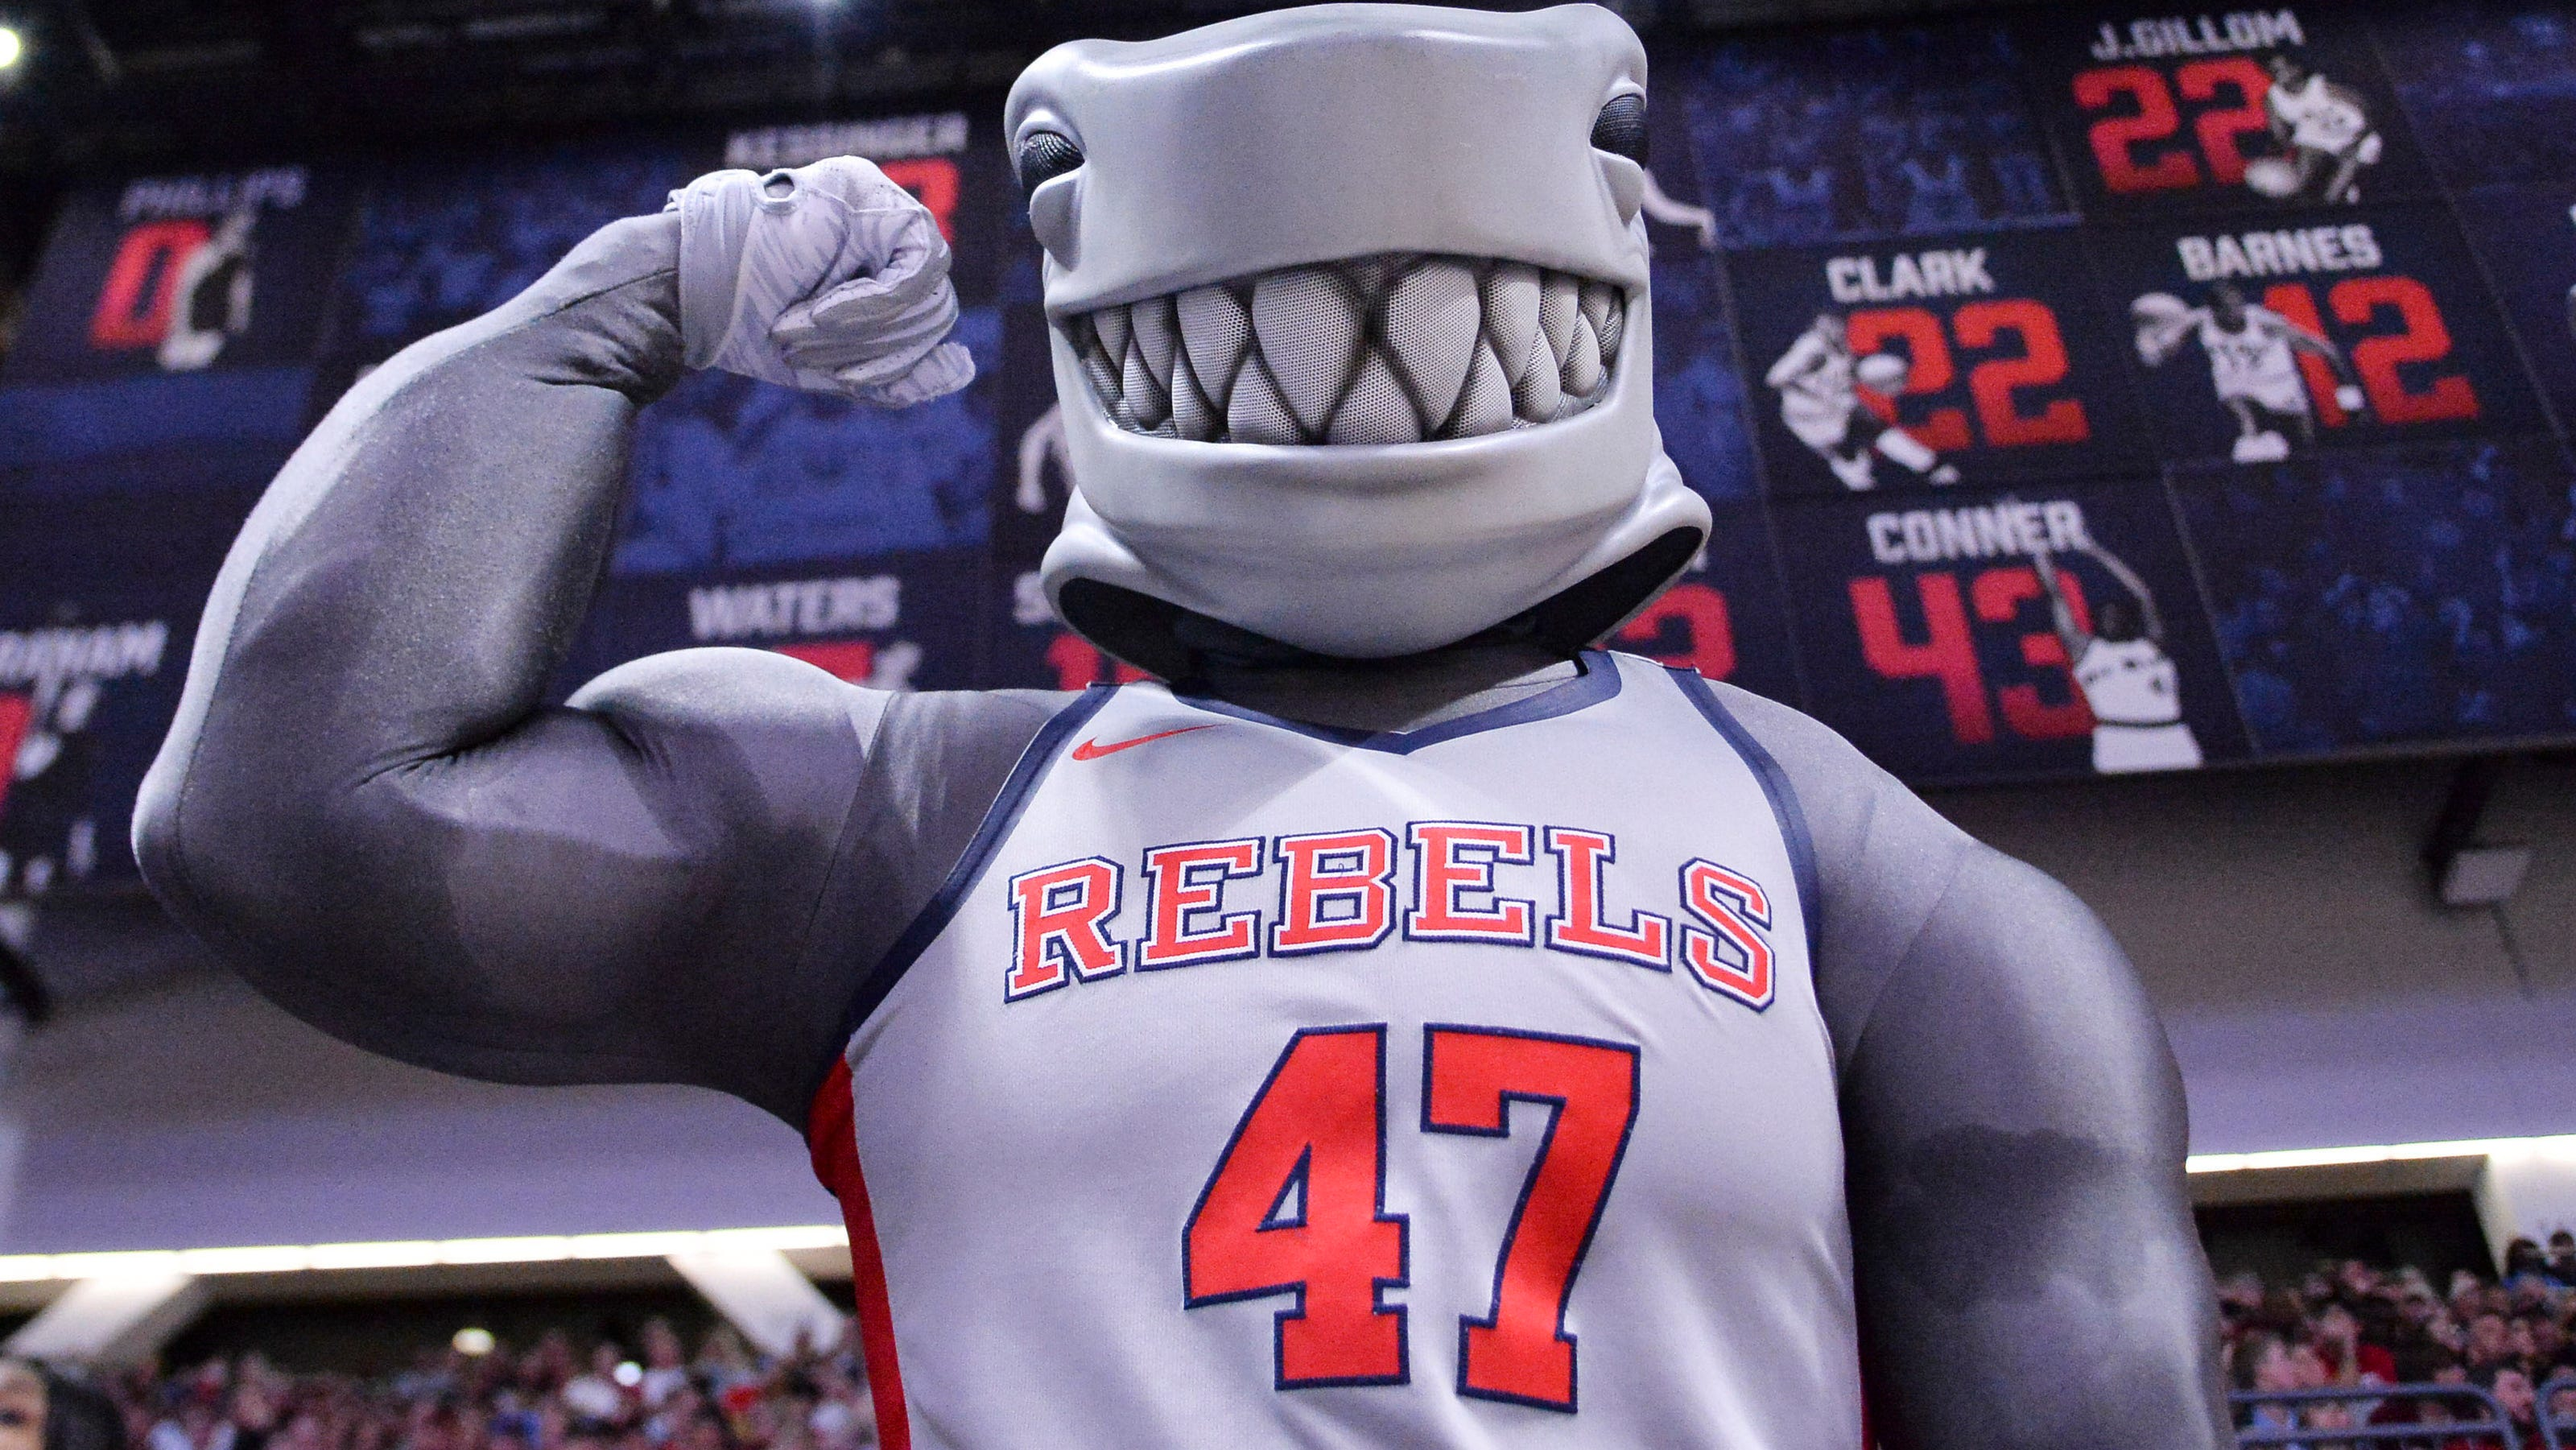 Ole Miss Should Drop Rebels As Its Athletic Nickname